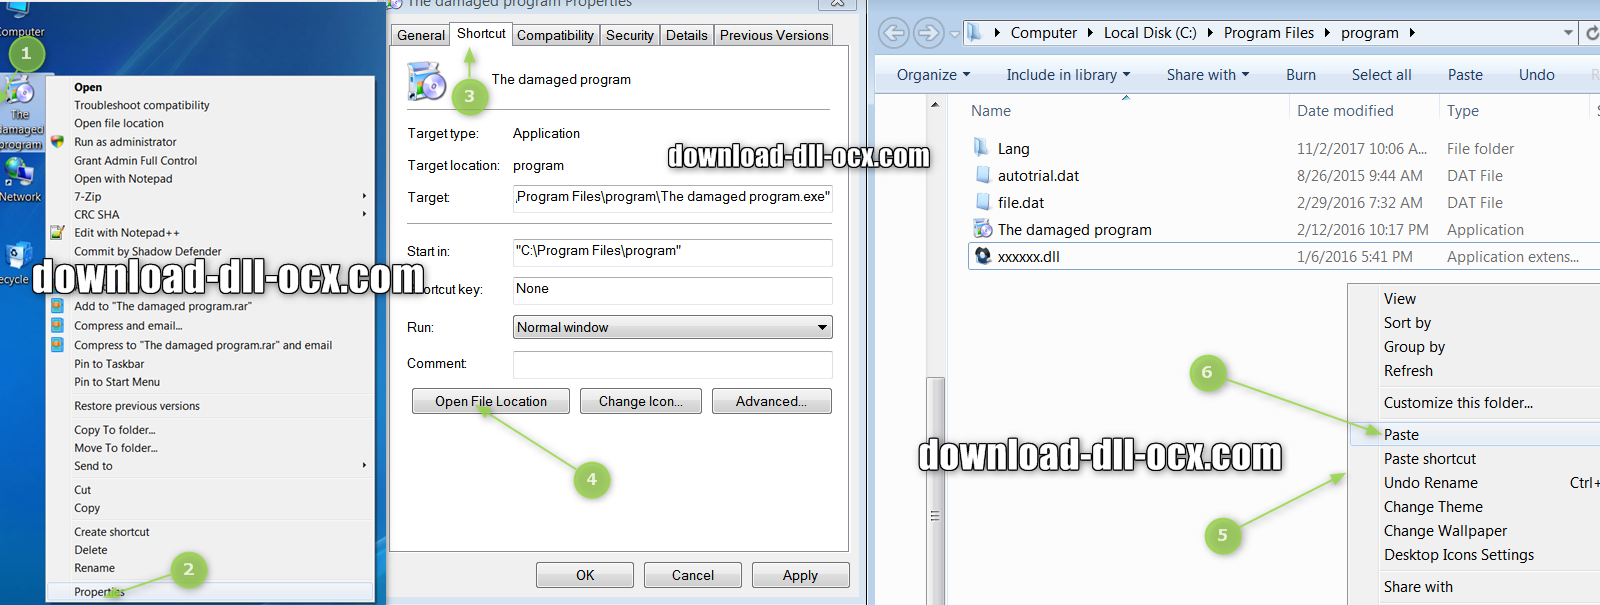 how to install Physxcudart_20.dll file? for fix missing